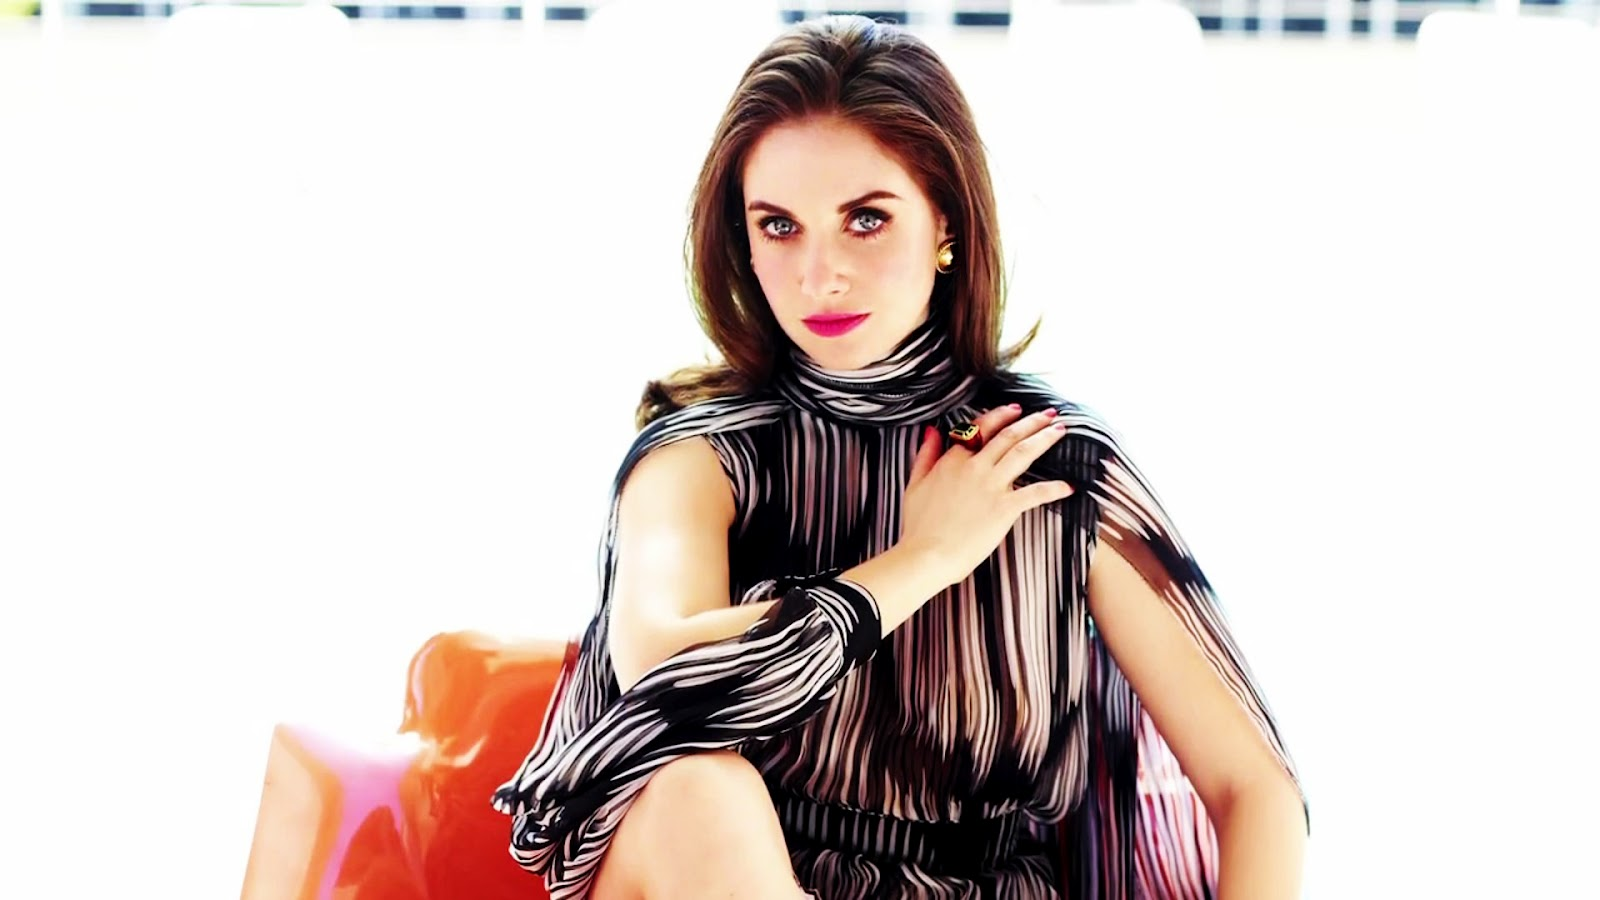 Alison Brie Wallpapers Windows 7 | Alison Brie Wallpapers